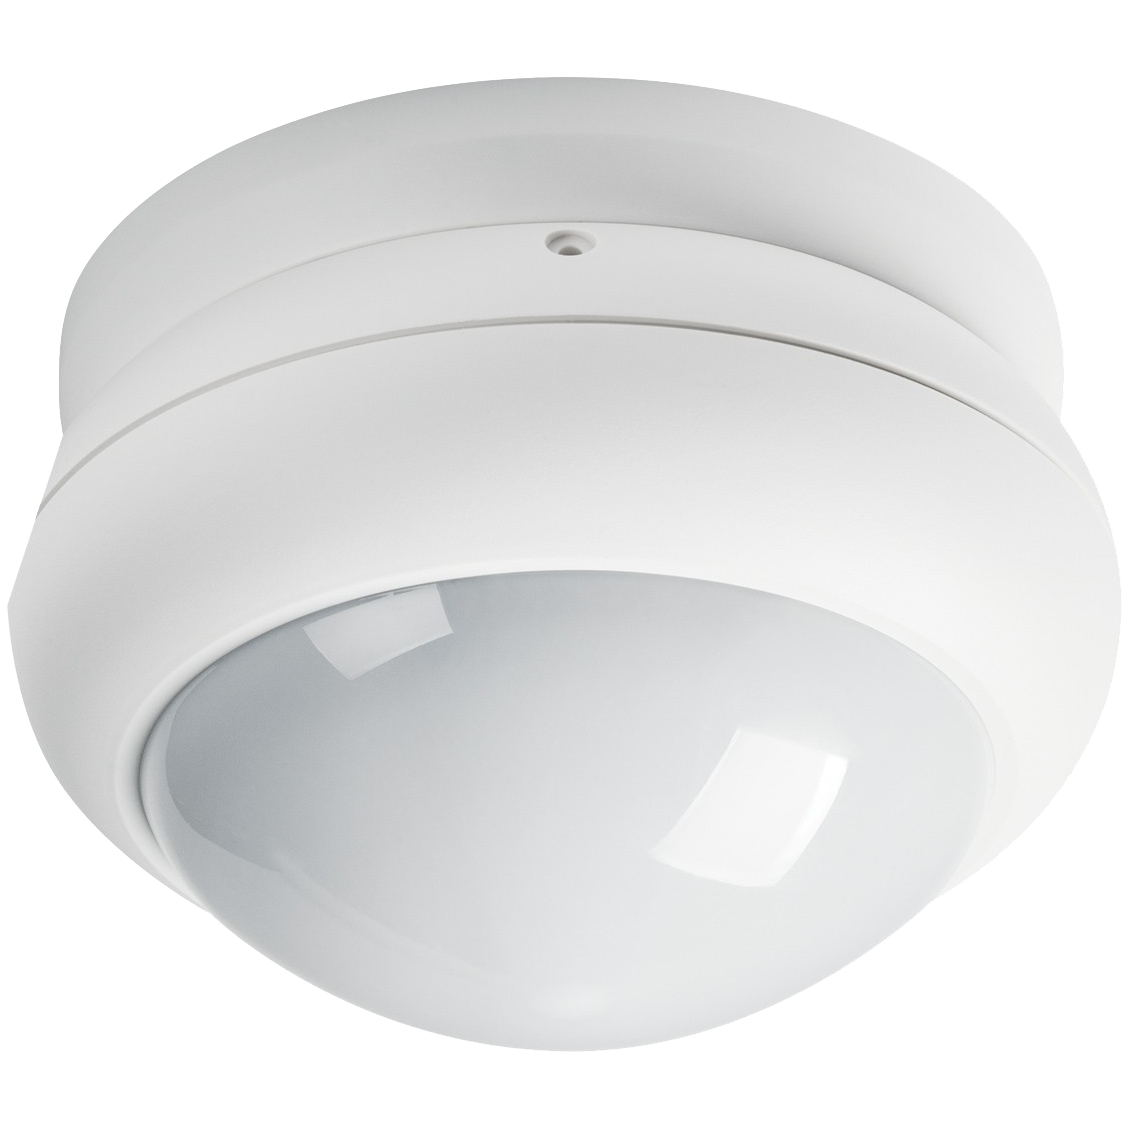 Ceiling Mounted Motion Sensor Lights: Interlogix Ceiling-Mount Motion Detector